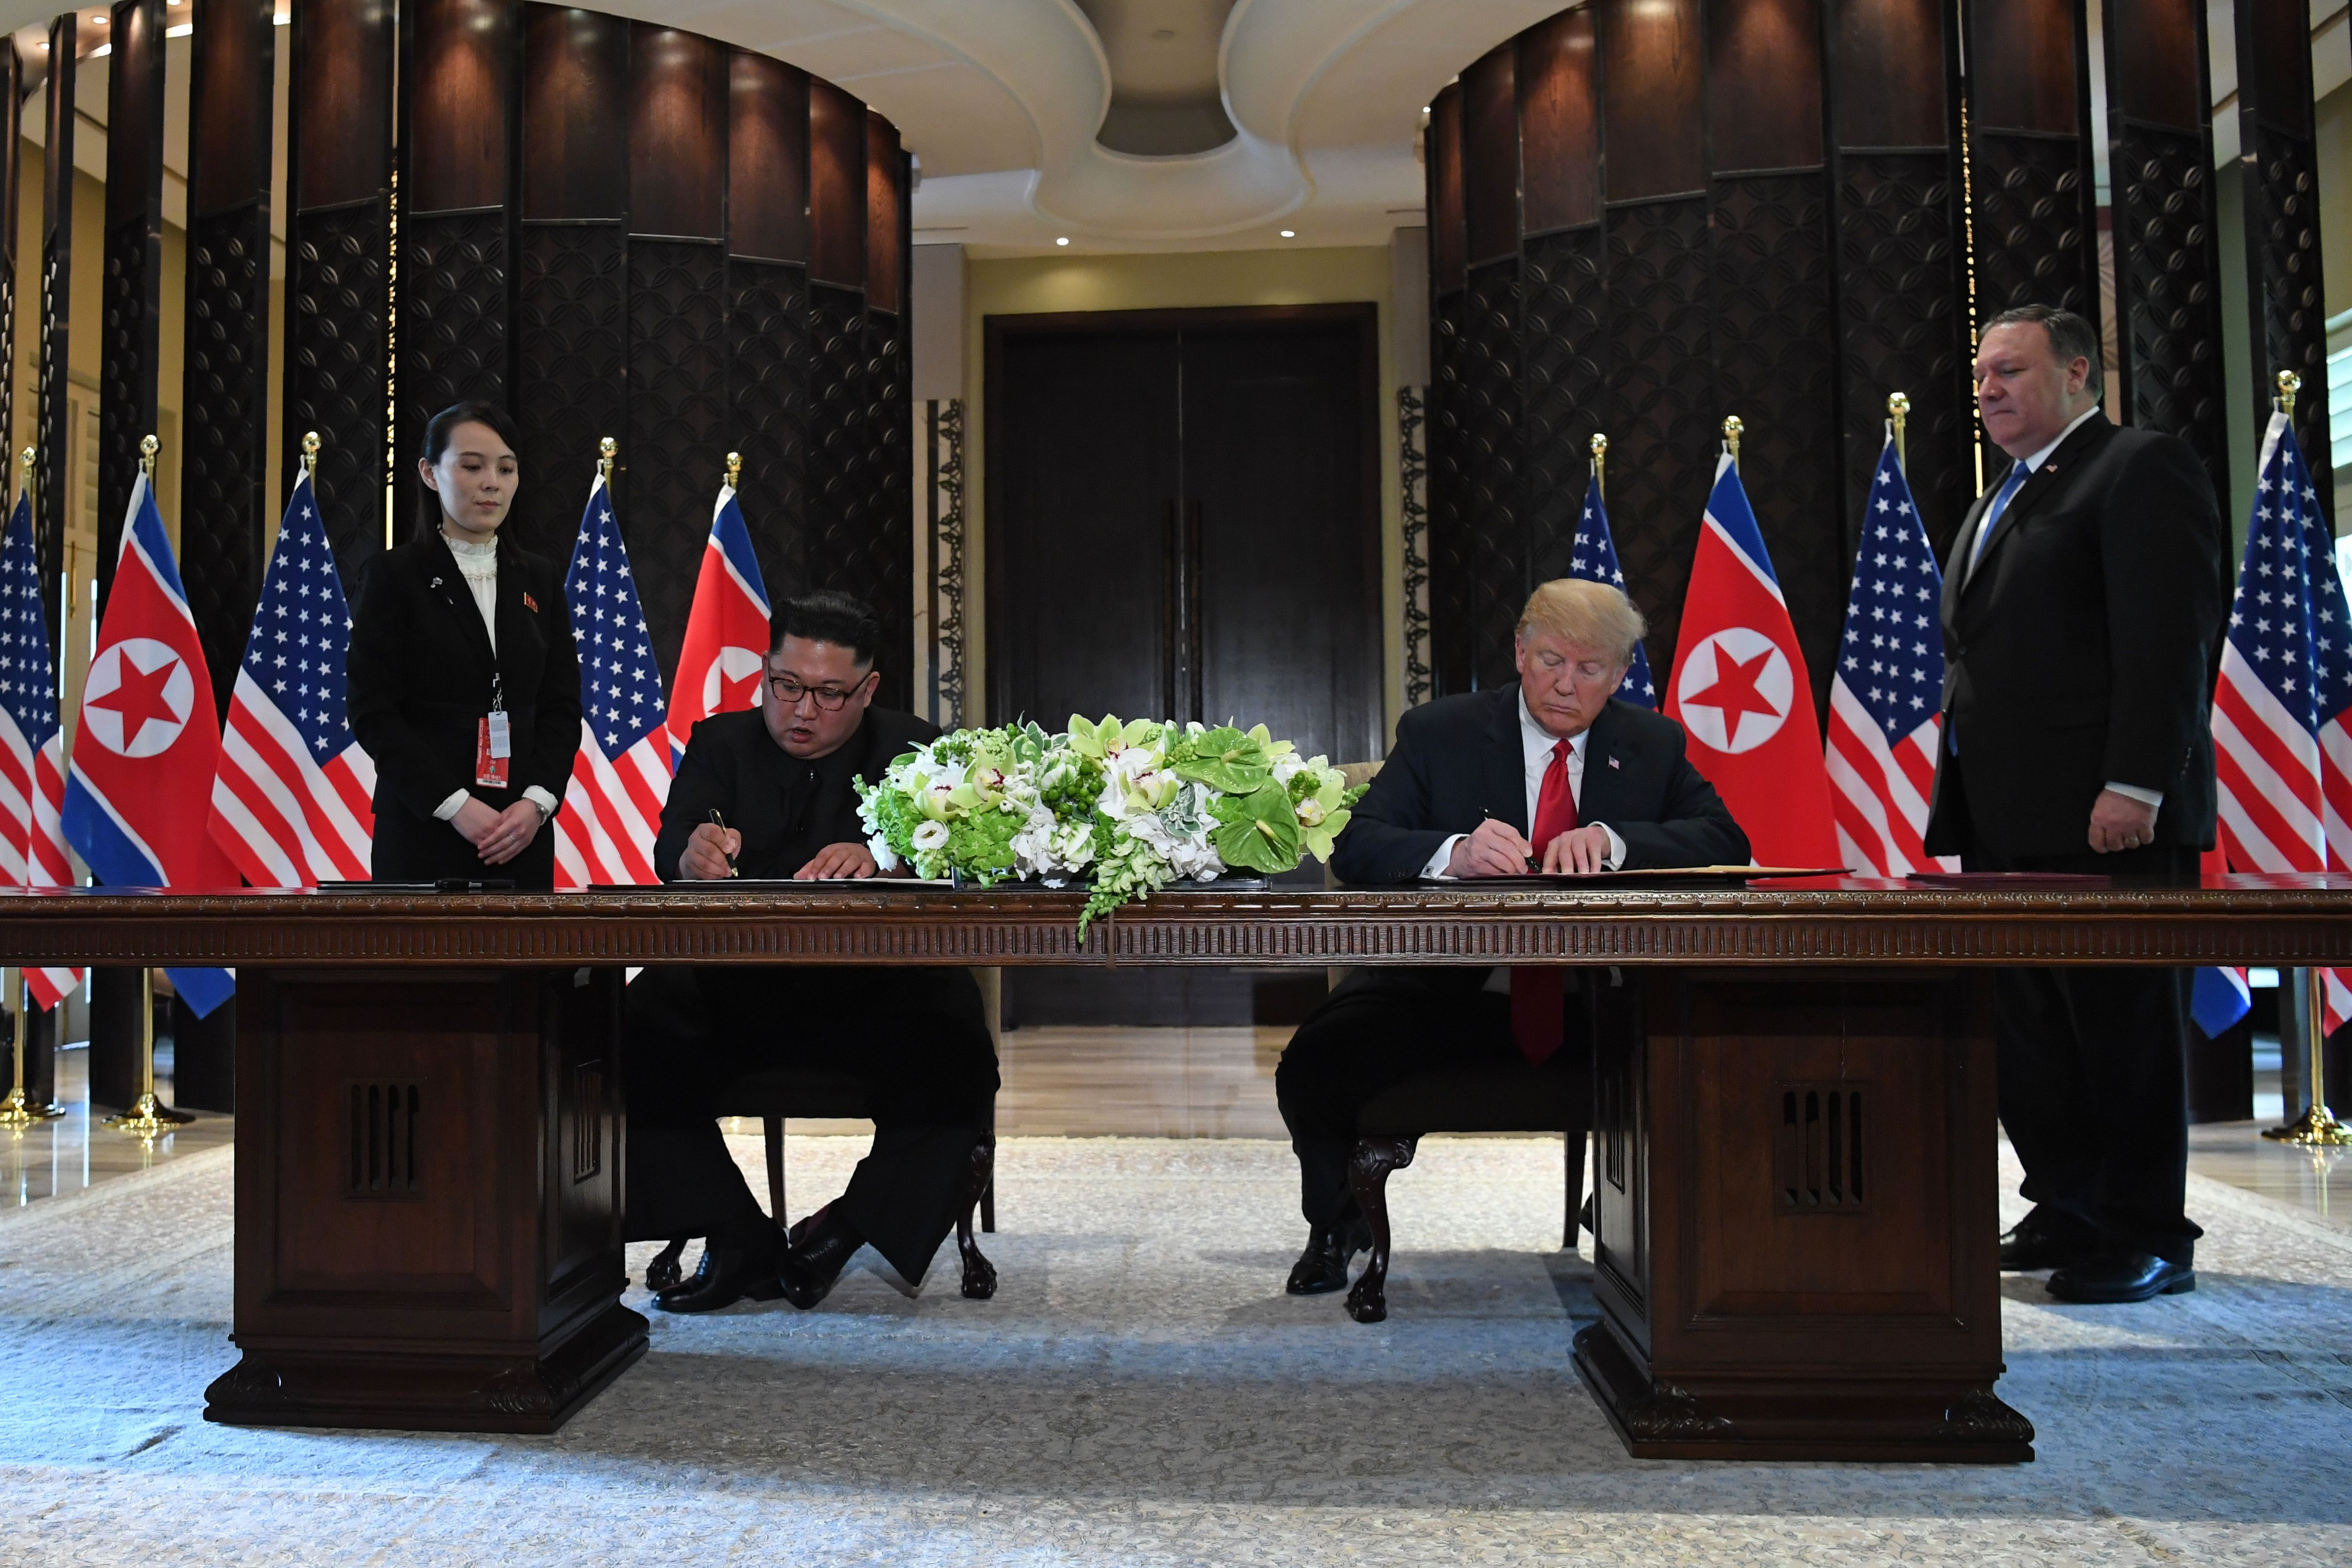 President Donald Trump and North Korea's leader Kim Jong Un sign documents as U.S. Secretary of State Mike Pompeo and the North Korean leader's sister Kim Yo Jong look on at a signing ceremony at the Capella Hotel on Sentosa island in Singapore on June 12, 2018.